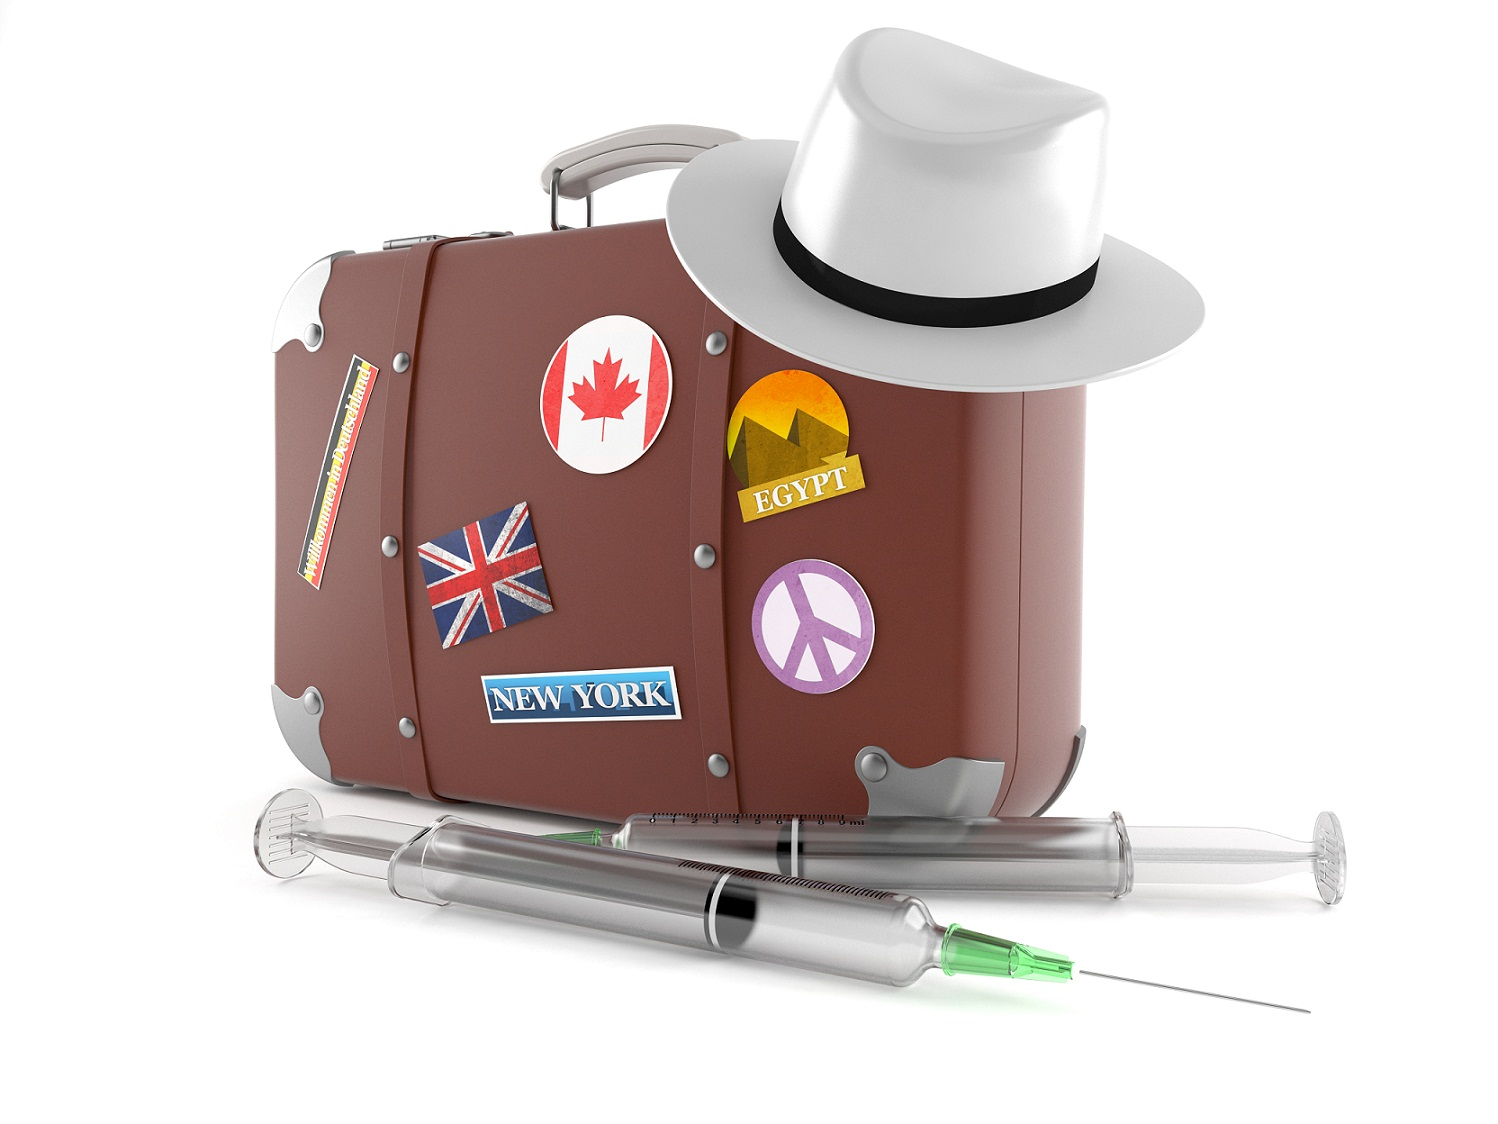 suitcase, hat and vaccines